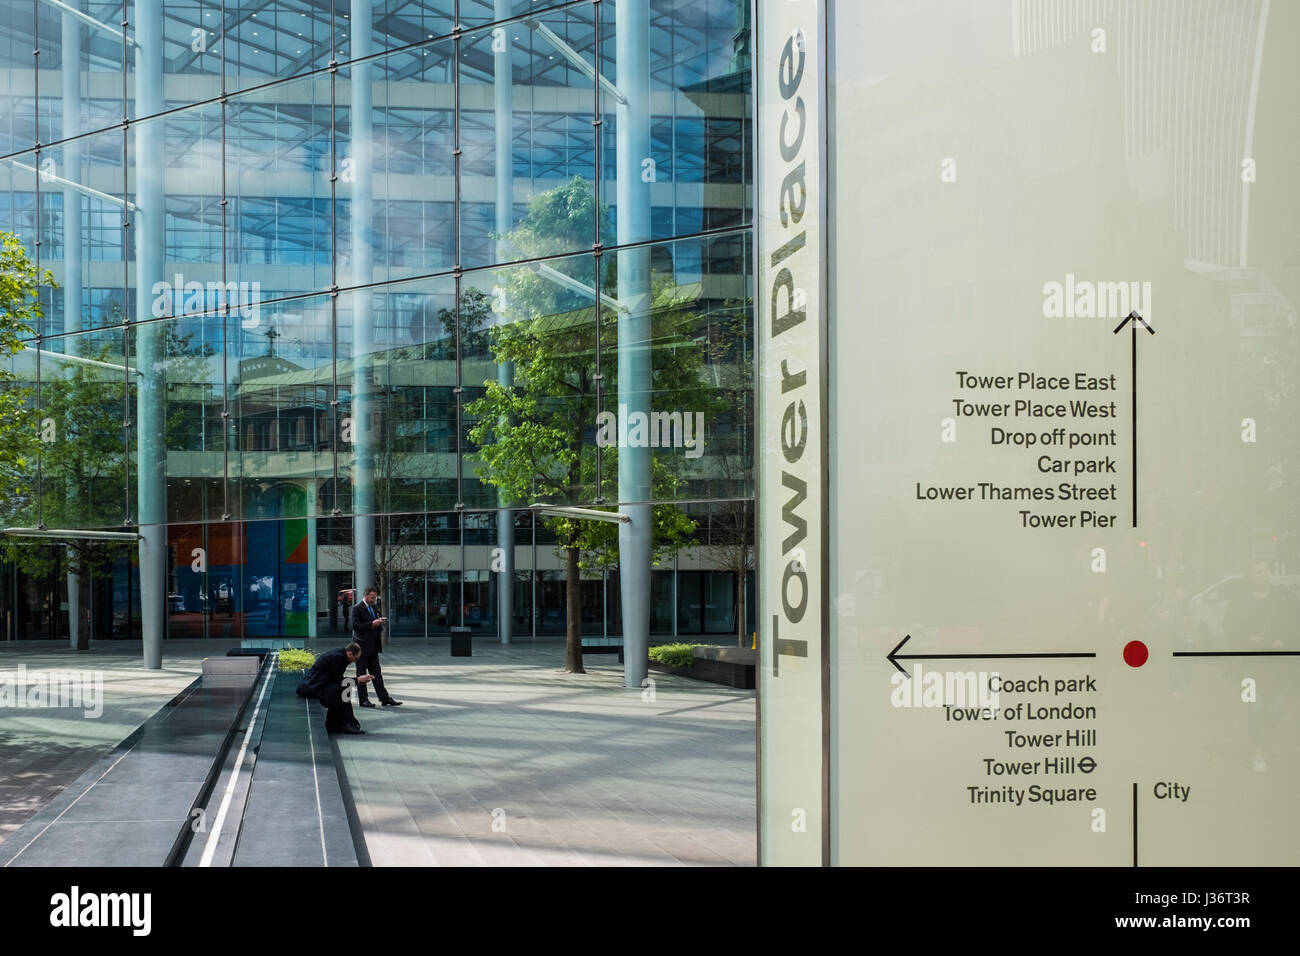 Tower Place office development close to the Tower of London, London, England, U.K. - Stock Image